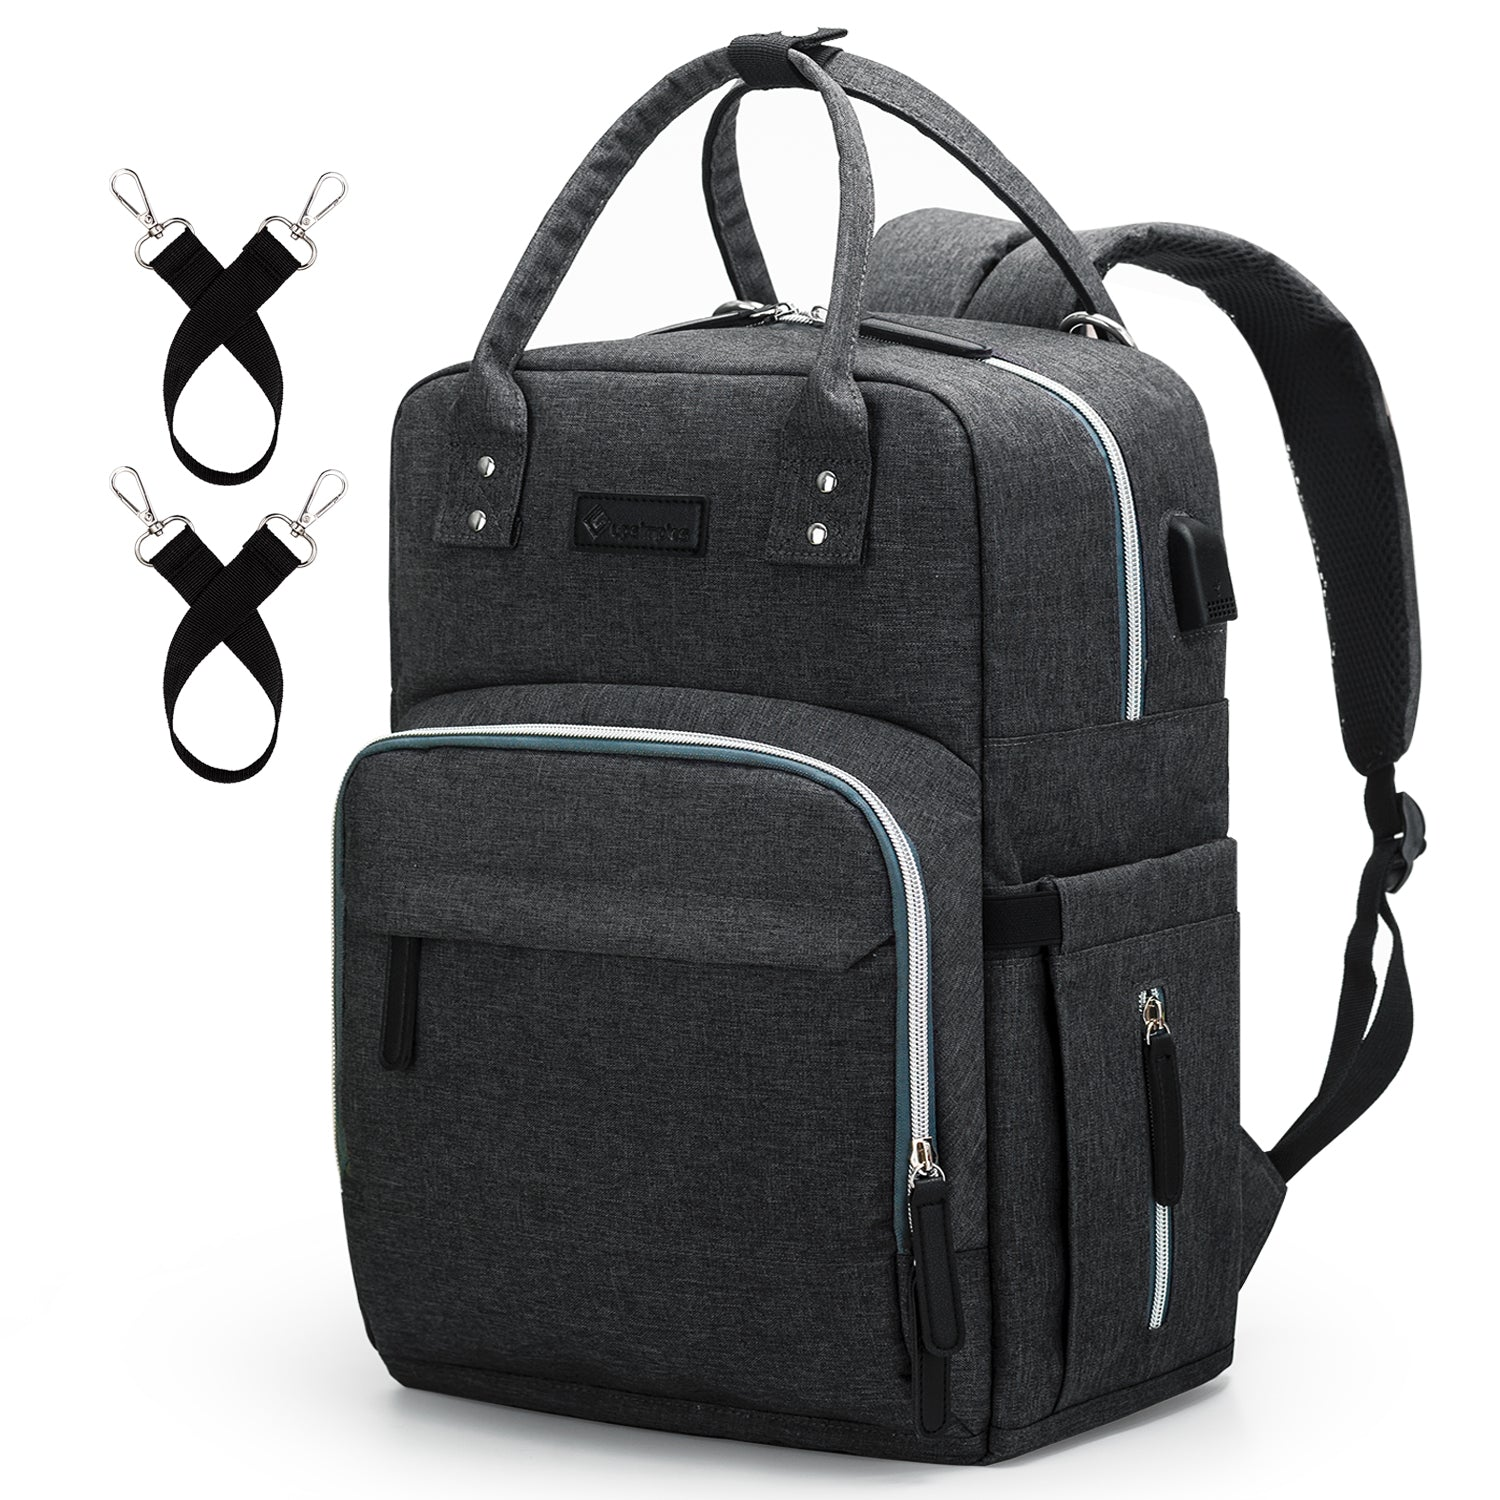 9672a10ae Diaper Bag Backpack Upsimples Multi-Function Maternity Nappy Bags for Mom    Dad